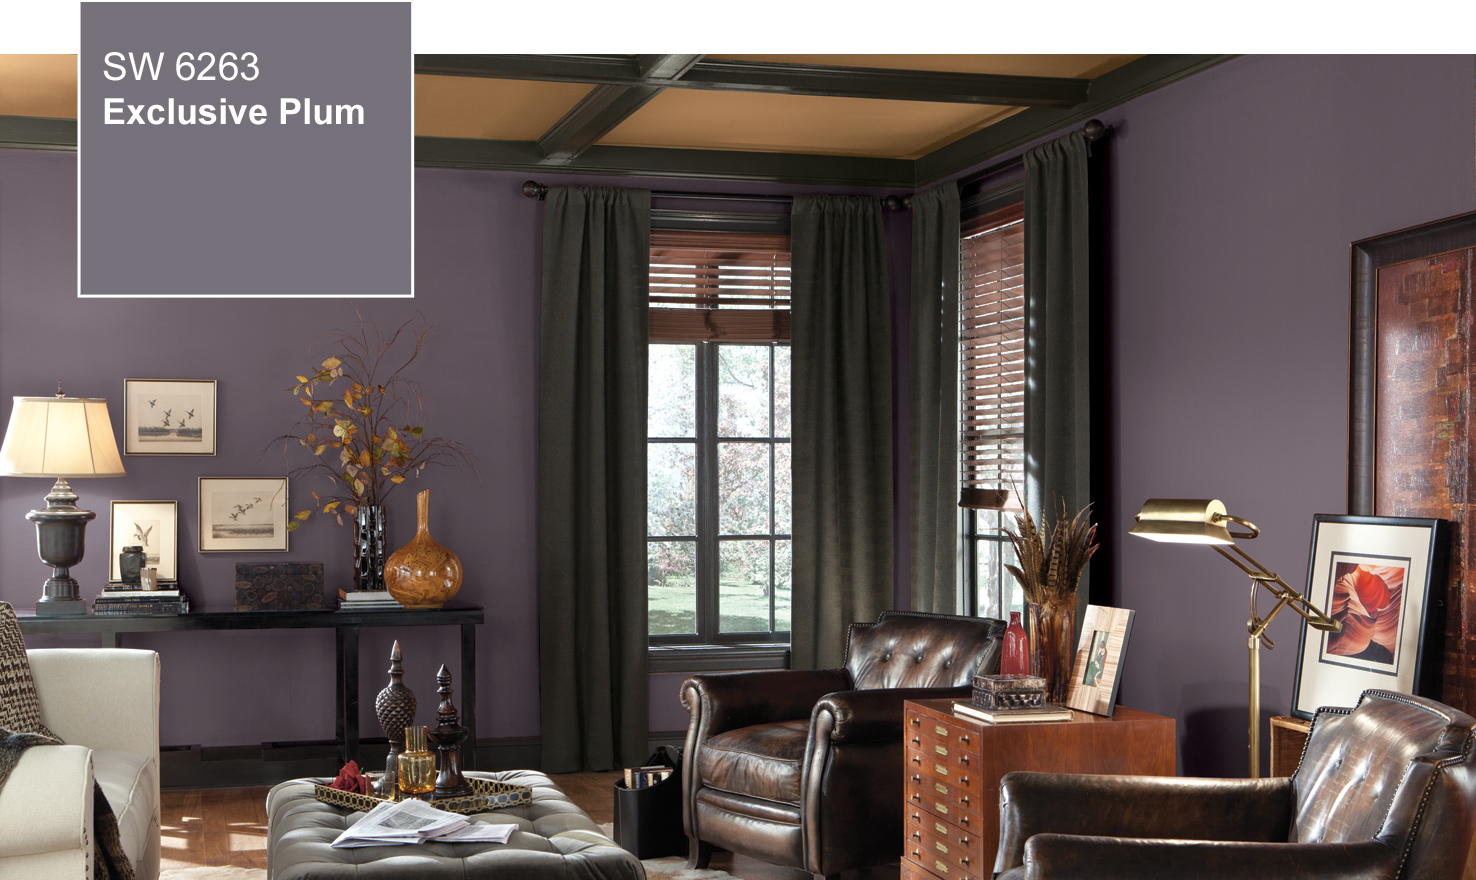 2014 color of the year exclusive plum sw 6263 by - Living room paint colors for 2014 ...